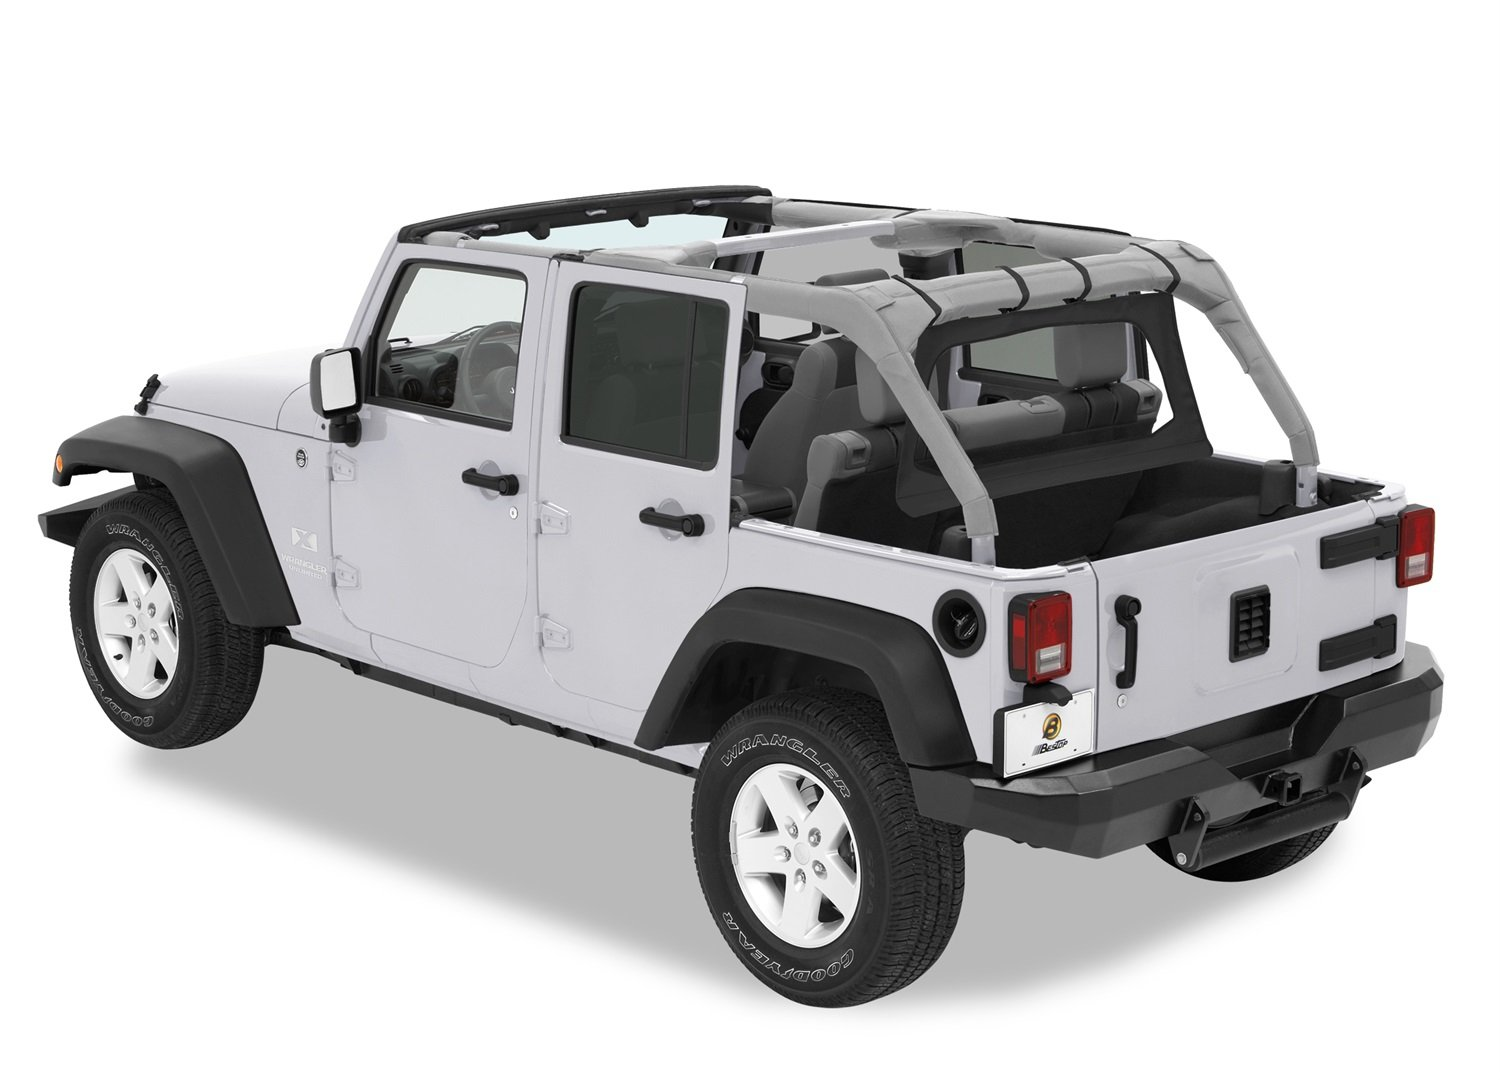 jk four door suvs unlimited overview wrangler sahara alt jeep hero image